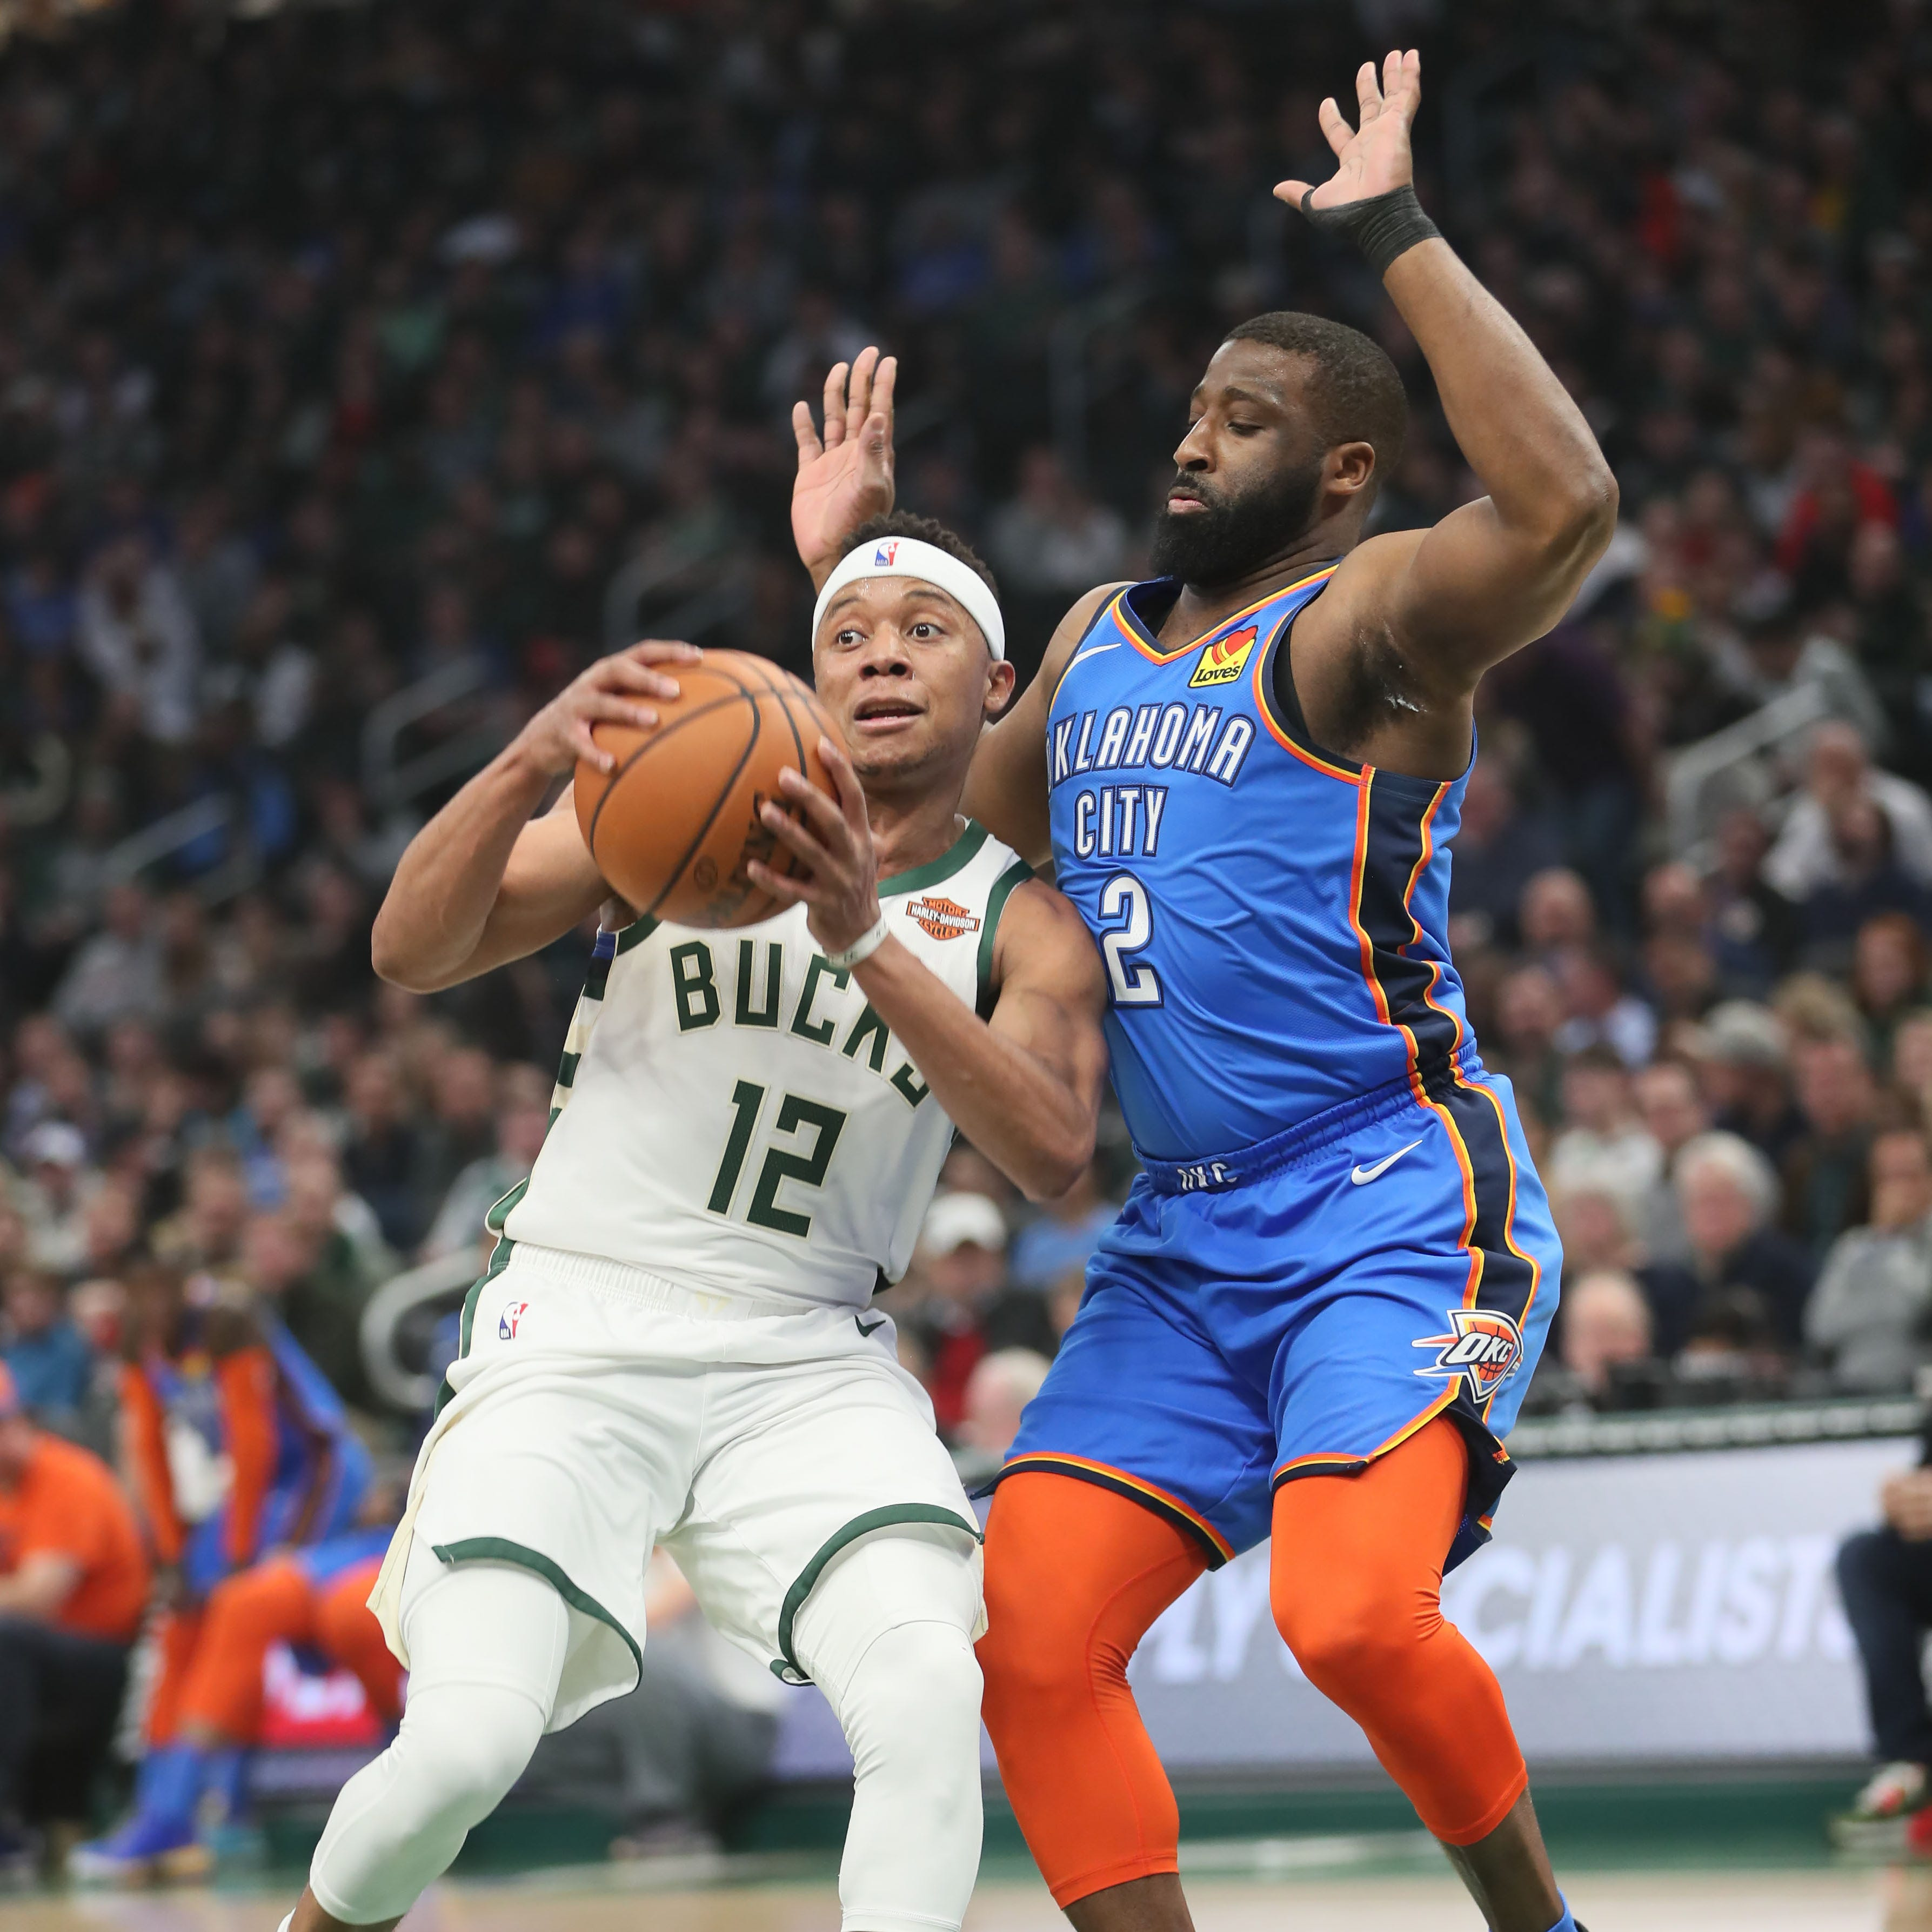 Thunder 127, Bucks 116: Regular season comes to an end, but Pistons, playoffs are on deck